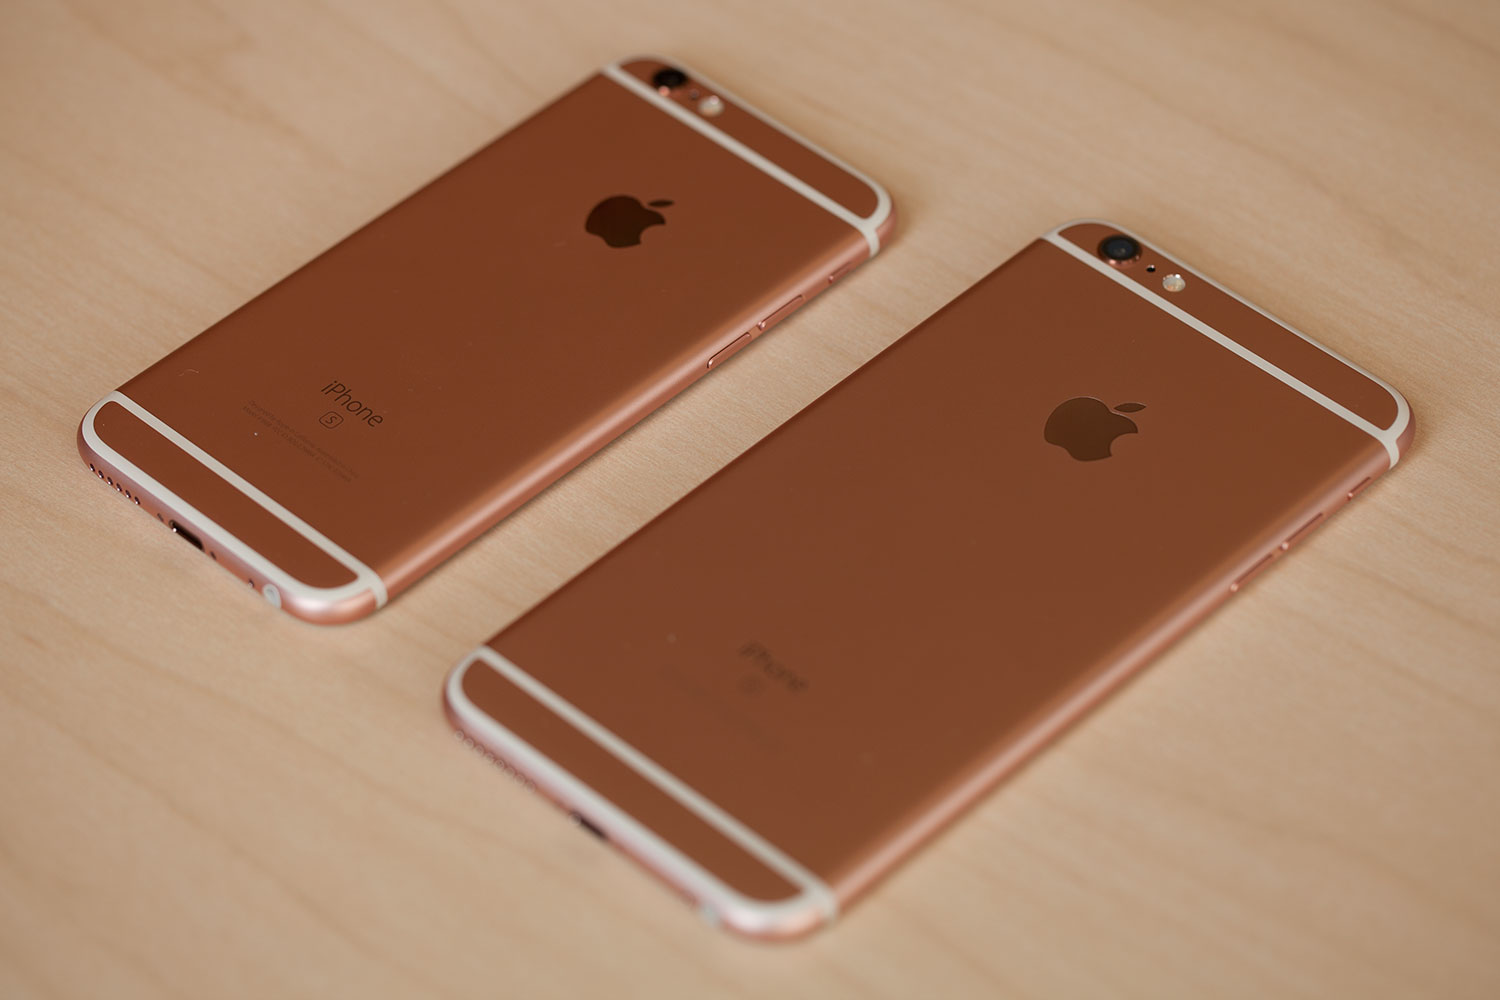 Apples Newest IPhone Isnt As Popular Its Predecessors